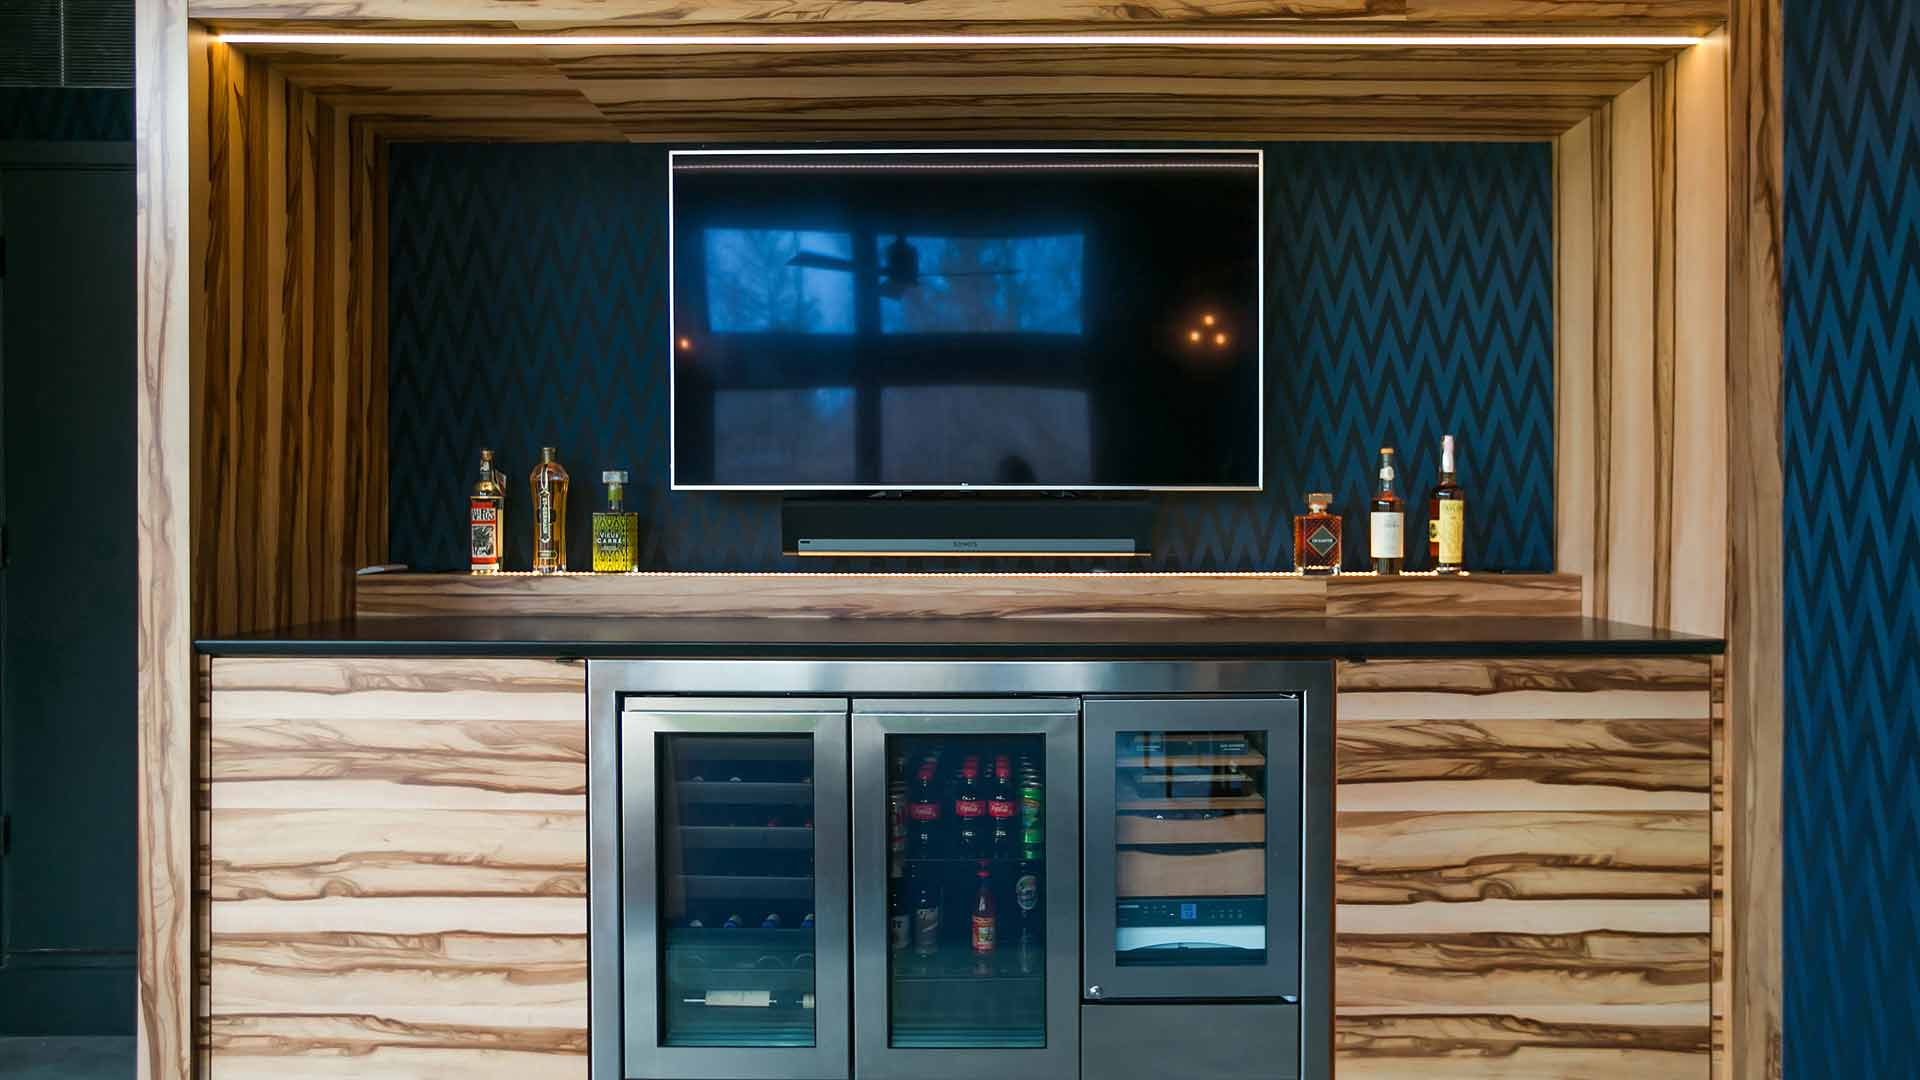 Bar Cabinet Detail - Cigar Room - Midcentury Modern Addition - Brendonwood, Indianapolis - Christopher Short, Paul Reynolds, Architects, HAUS | Architecture For Modern Lifestyles - WERK | Building Modern - Paul Reynolds, Project Manager